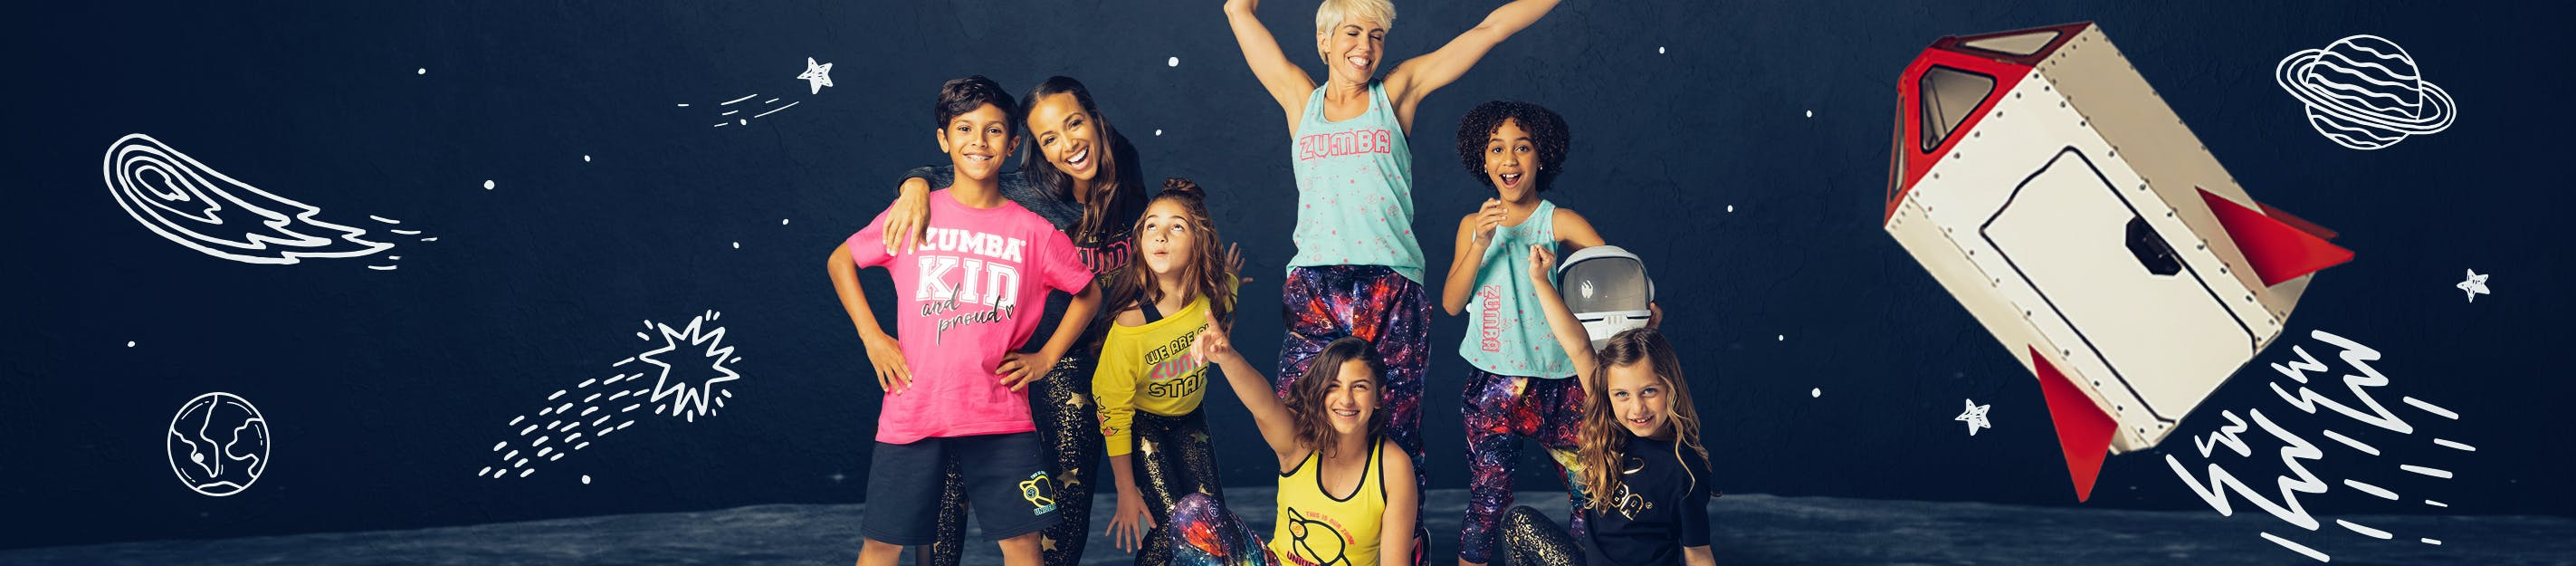 Zumba Wear Juniors 2020